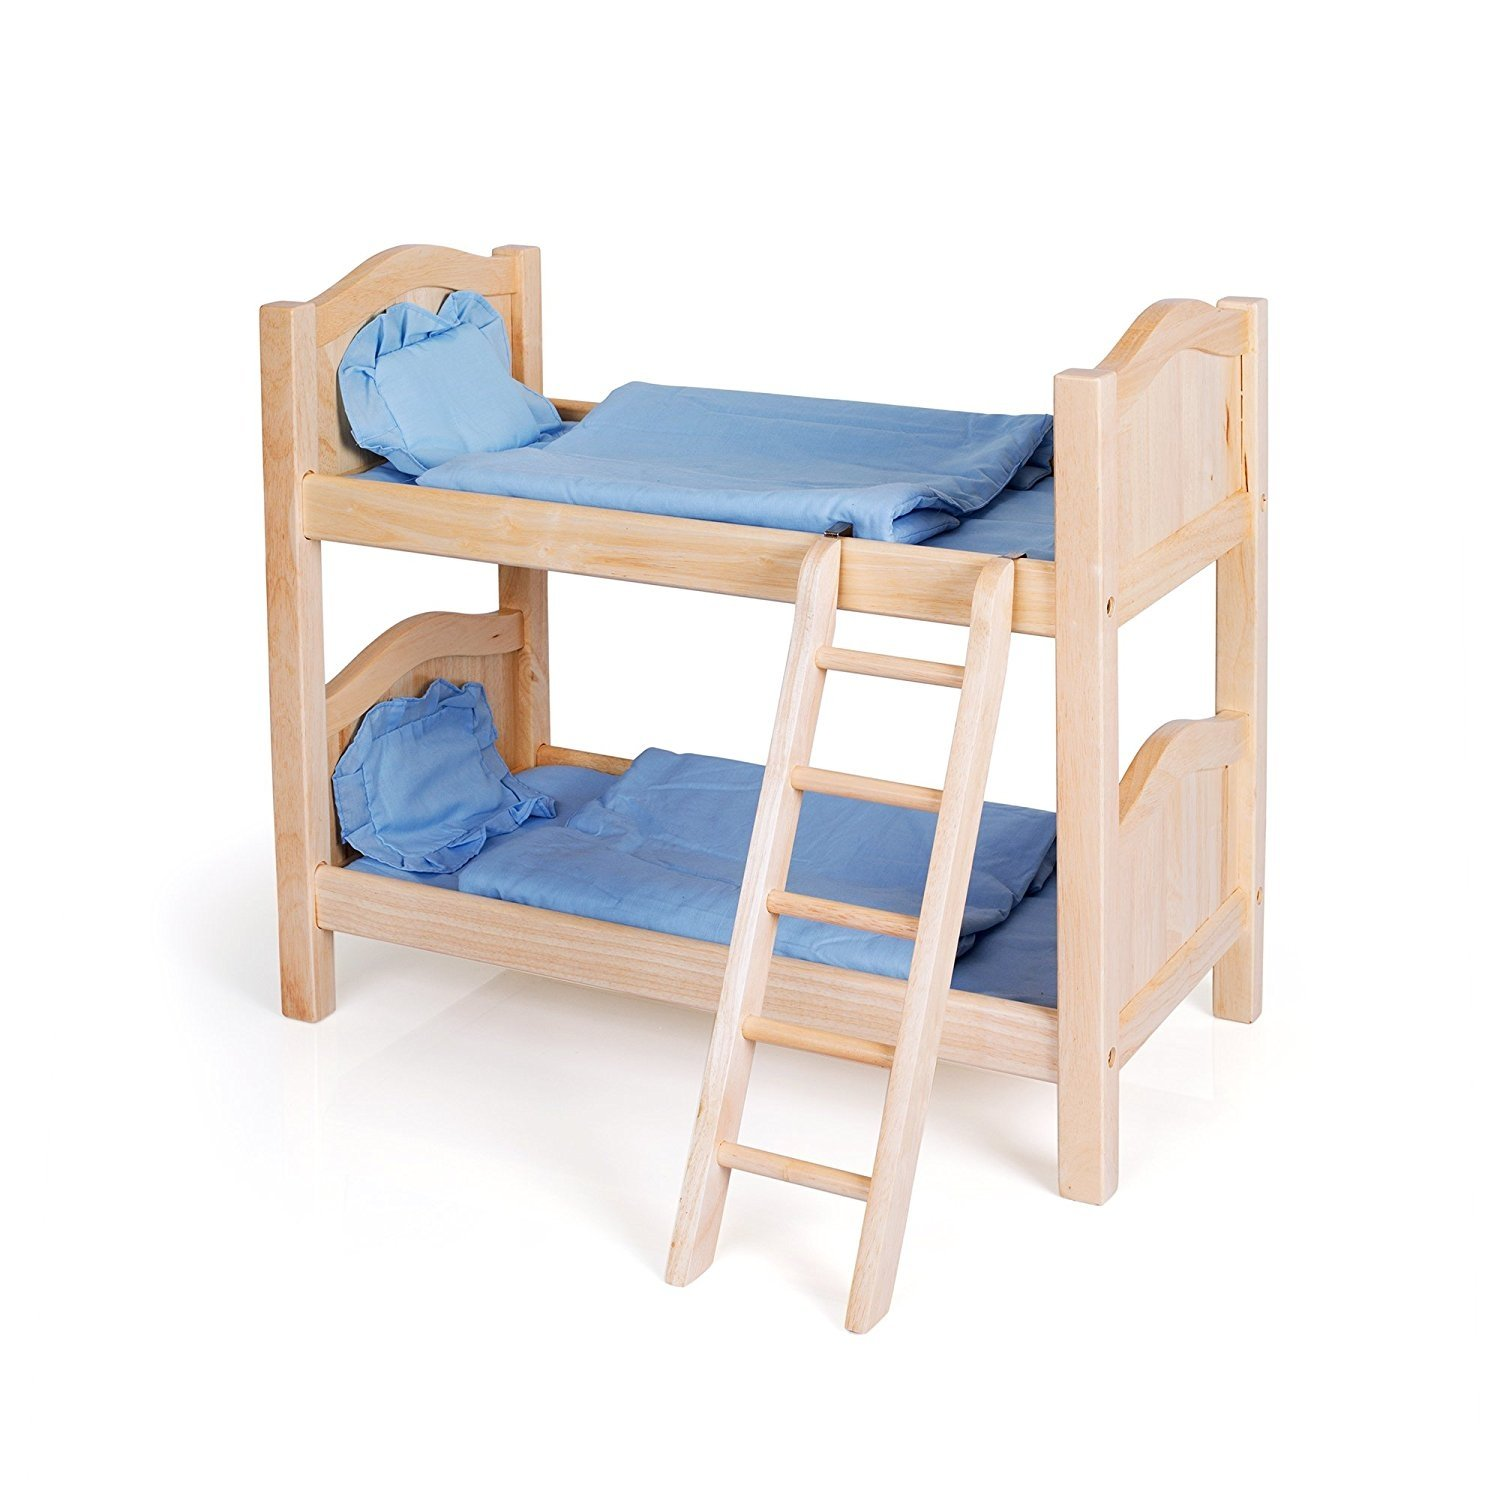 Guidecraft Natural Wooden Doll Bunk Bed Fits 18 American Girl